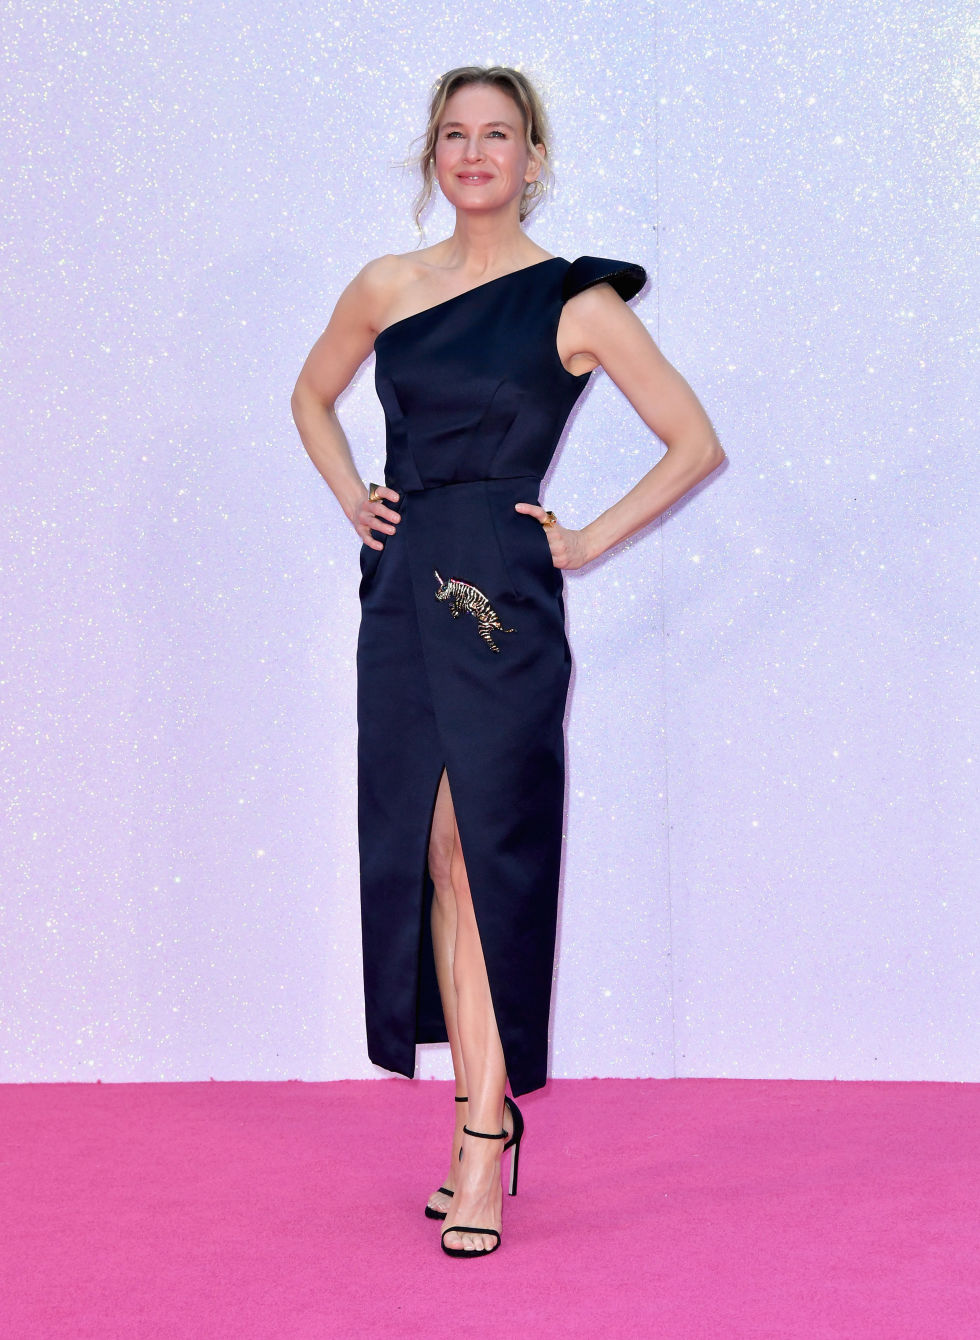 Into your fashion game with amazing party dresses cocktail dresses day - 19 Best Celebrity Diet And Fitness Tips Fitness And Diet Trends Celebrities Swear By